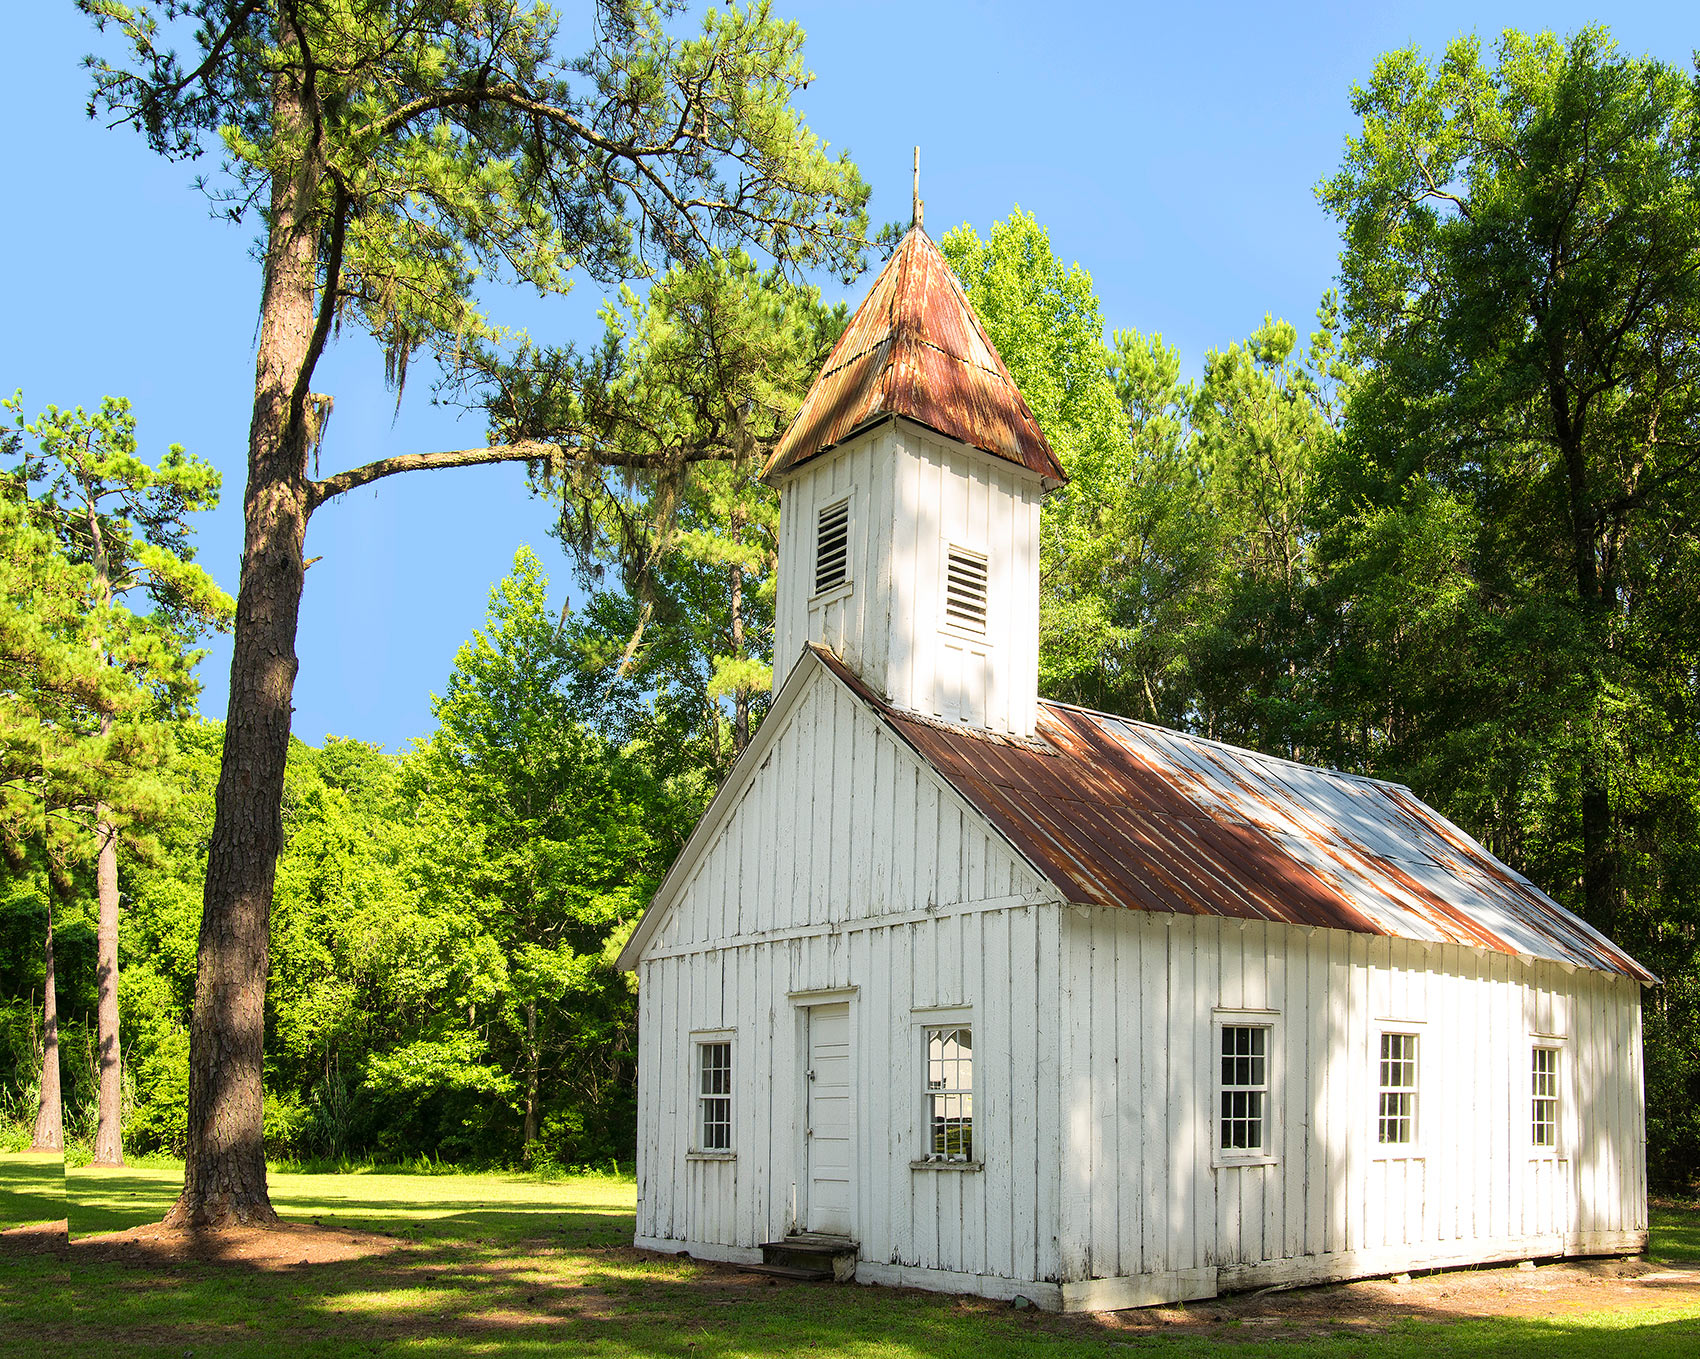 A wooden church in Friendfield Village